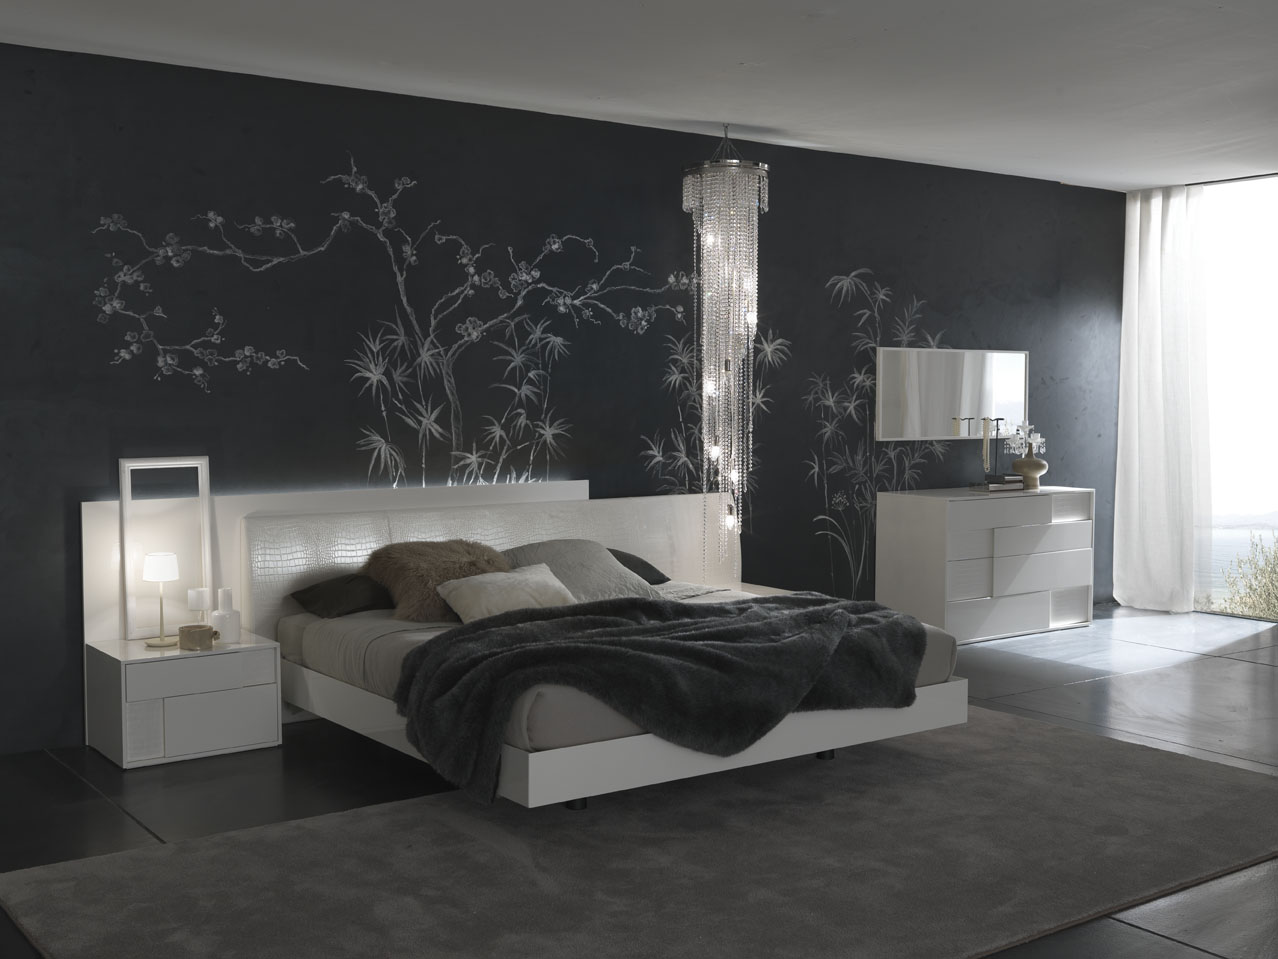 Free Download 2013 Wall Art Bedroom With Gray Accent